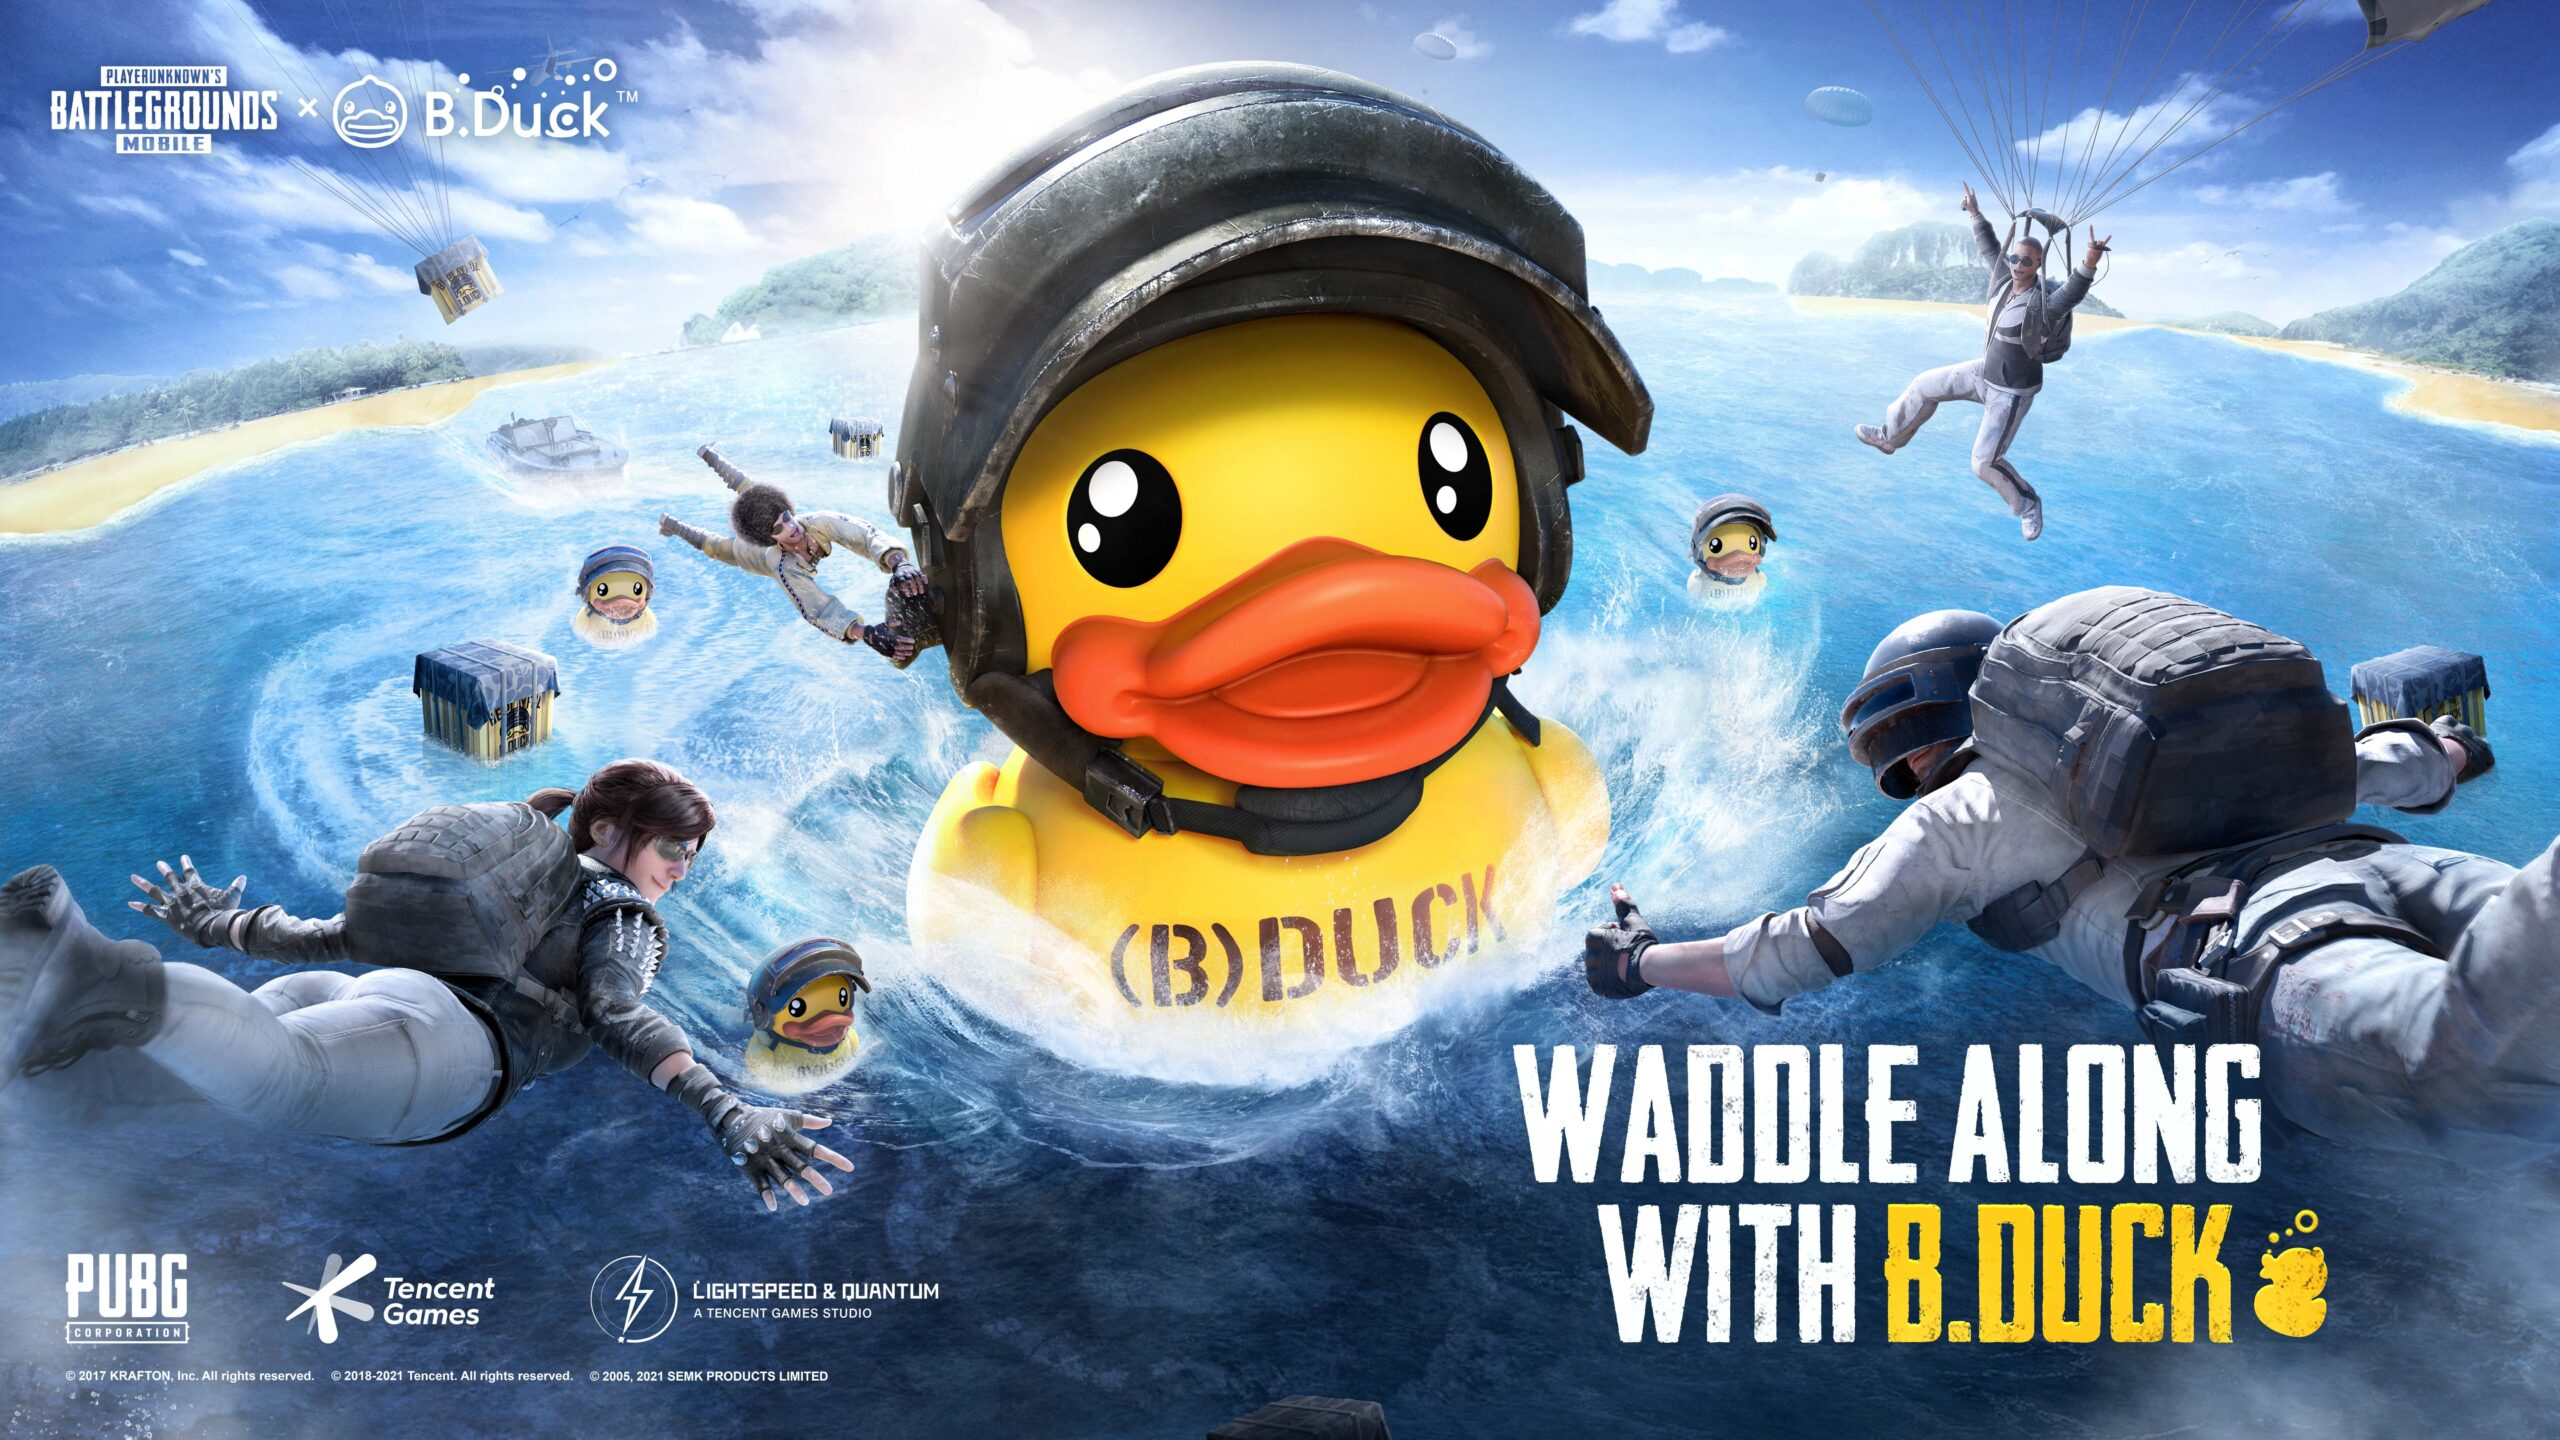 Little flippers make a big splash as PUBG MOBILE reveals a new partnership crossover with hit IP Character B.Duck. Beginning from Feb 24, PUBG MOBILE fans and B.Duck enthusiasts alike can drop into classic maps for specially-themed in-game collectibles and festive events, on the App Store and Google Play.